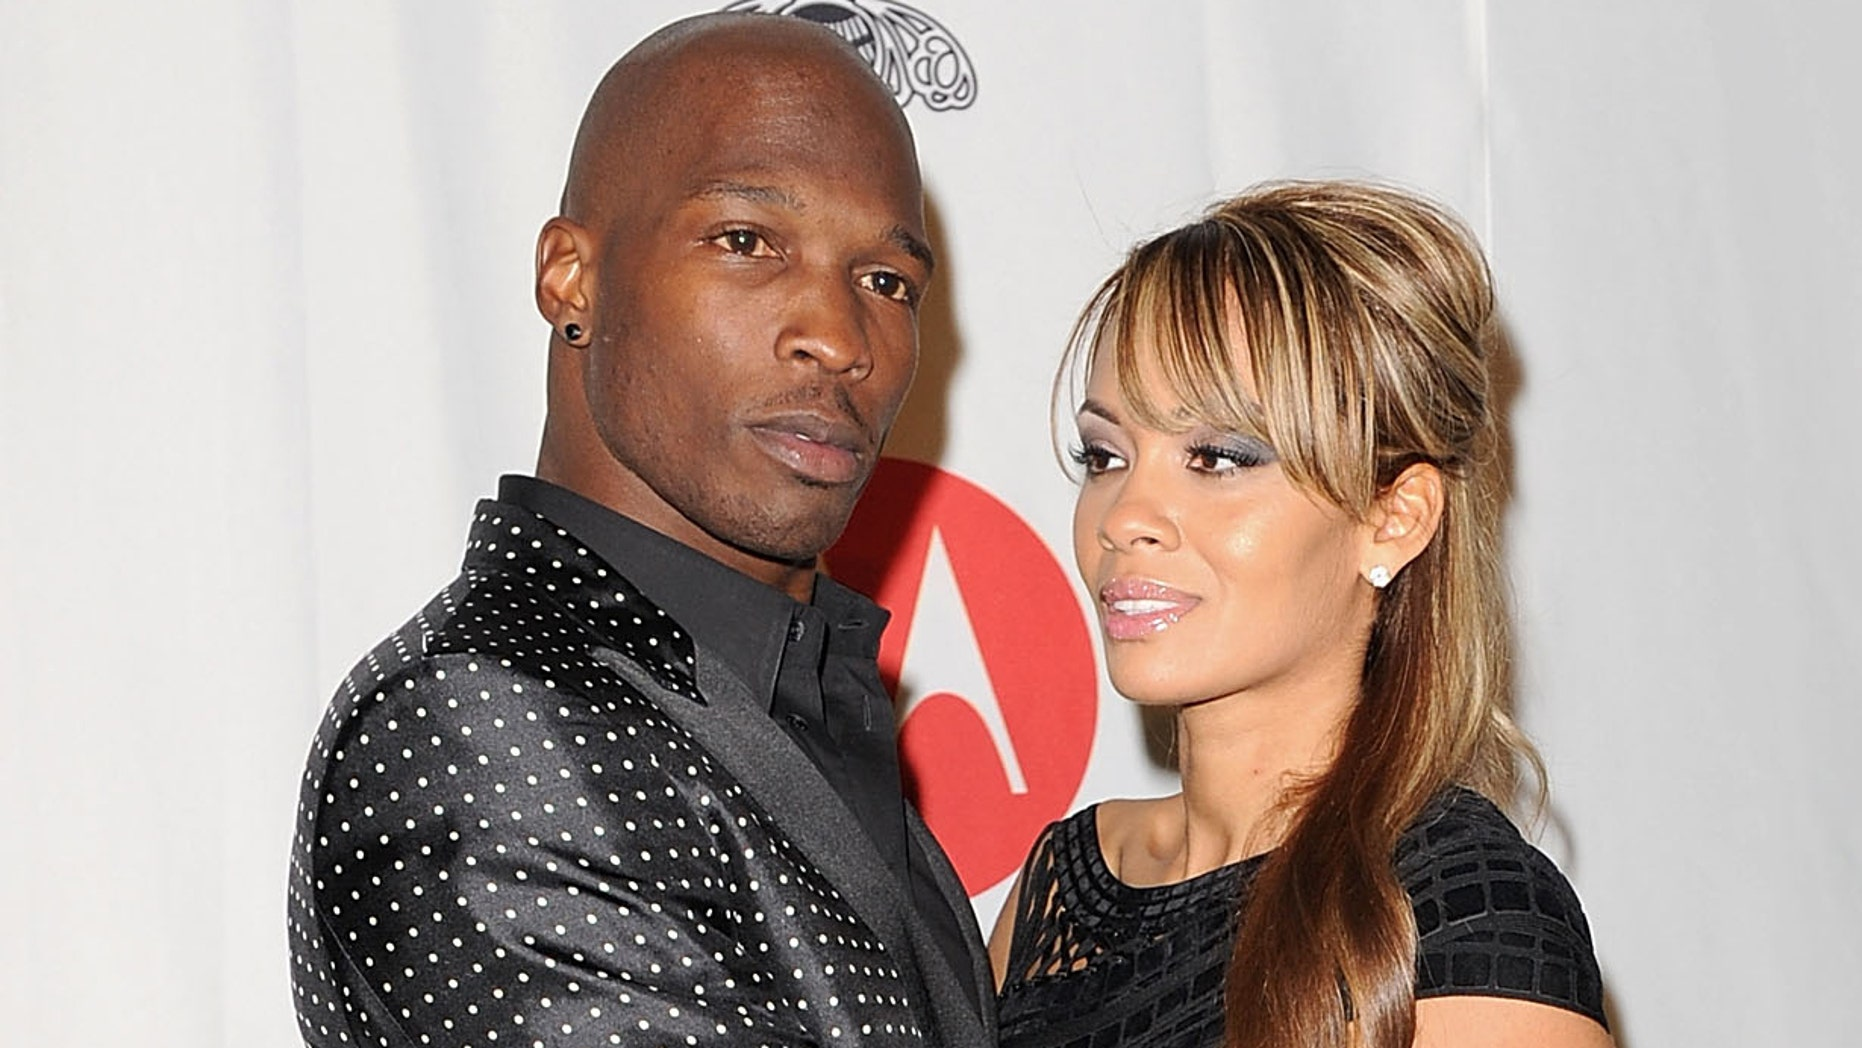 DALLAS, TX - FEBRUARY 05:  NFL player Chad Ochocinco Johnson and Evelyn Lozada attend the Maxim Party Powered by Motorola Xoom at Centennial Hall at Fair Park on February 5, 2011 in Dallas, Texas.  (Photo by Gustavo Caballero/Getty Images for Maxim)